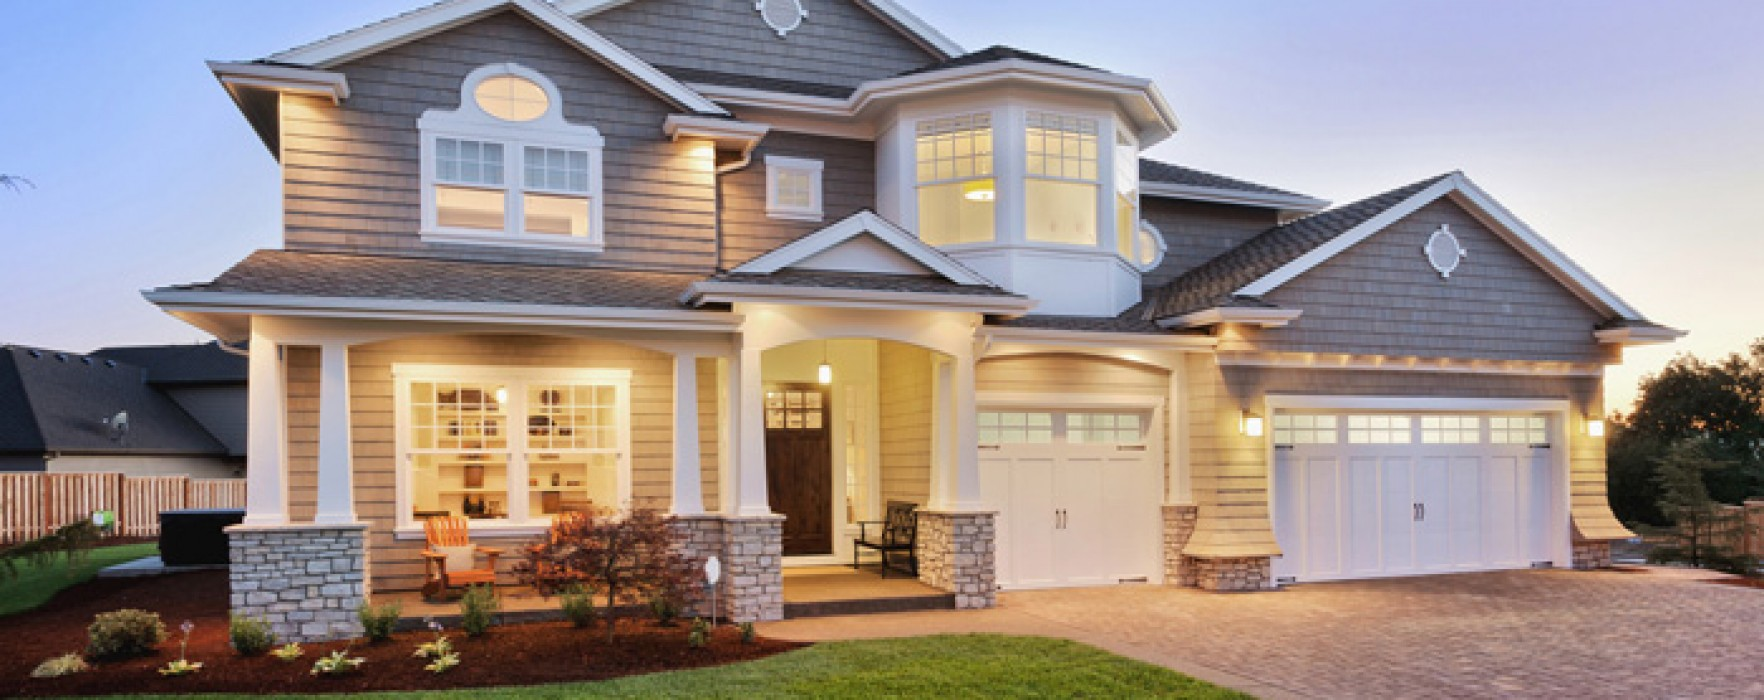 Amenities to Look for When Buying Your Dream Home